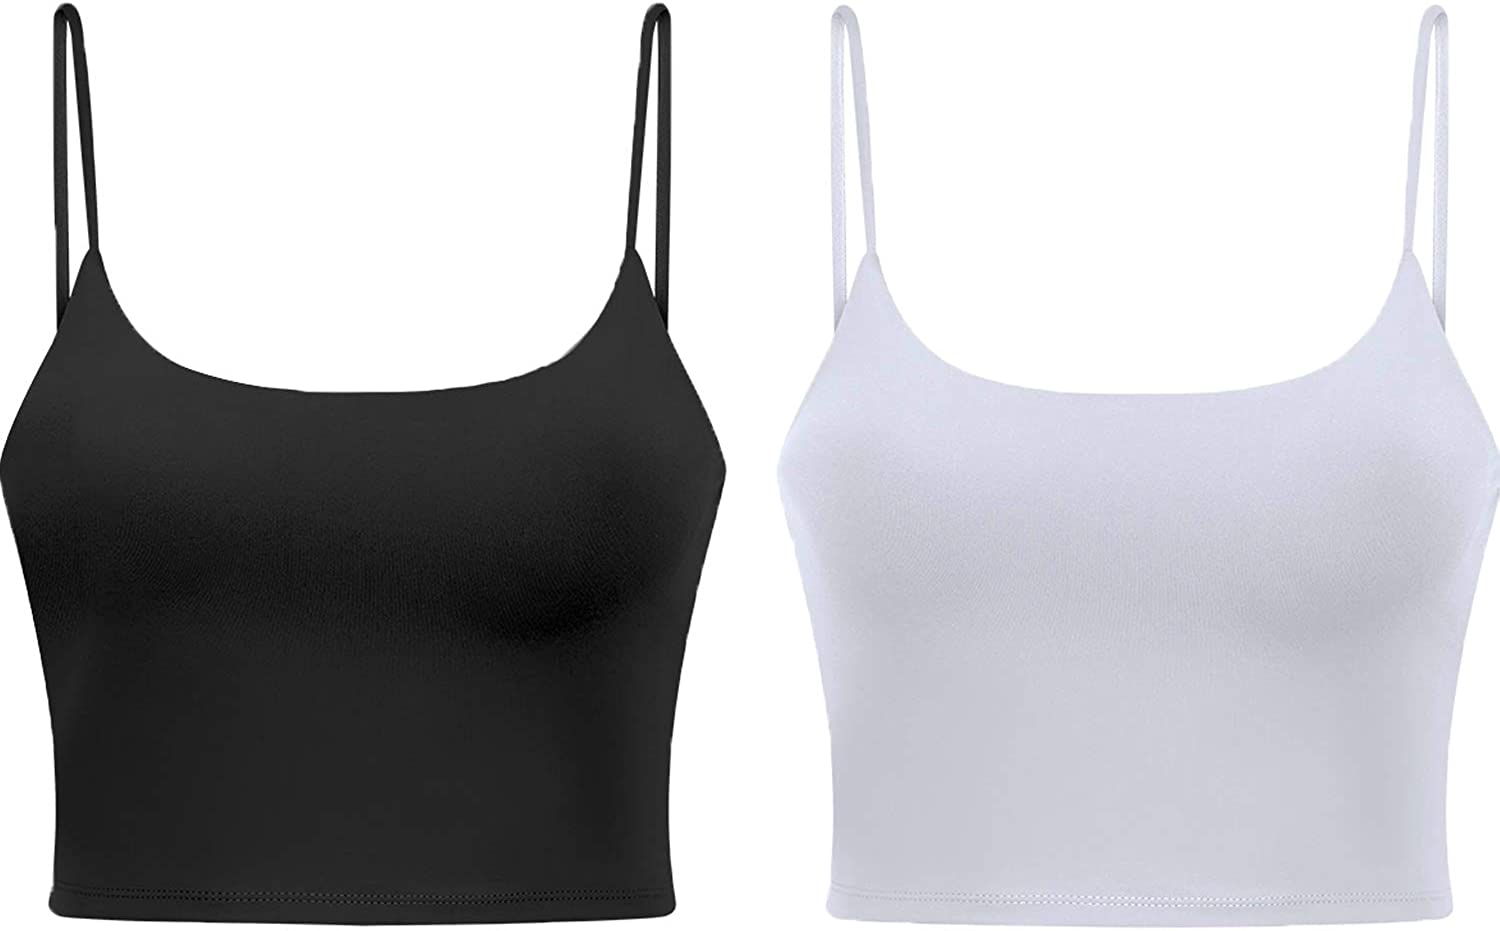 Women's Longline Sports Bra Camisole Crop Top with Cups and Built in Bar for Yoga